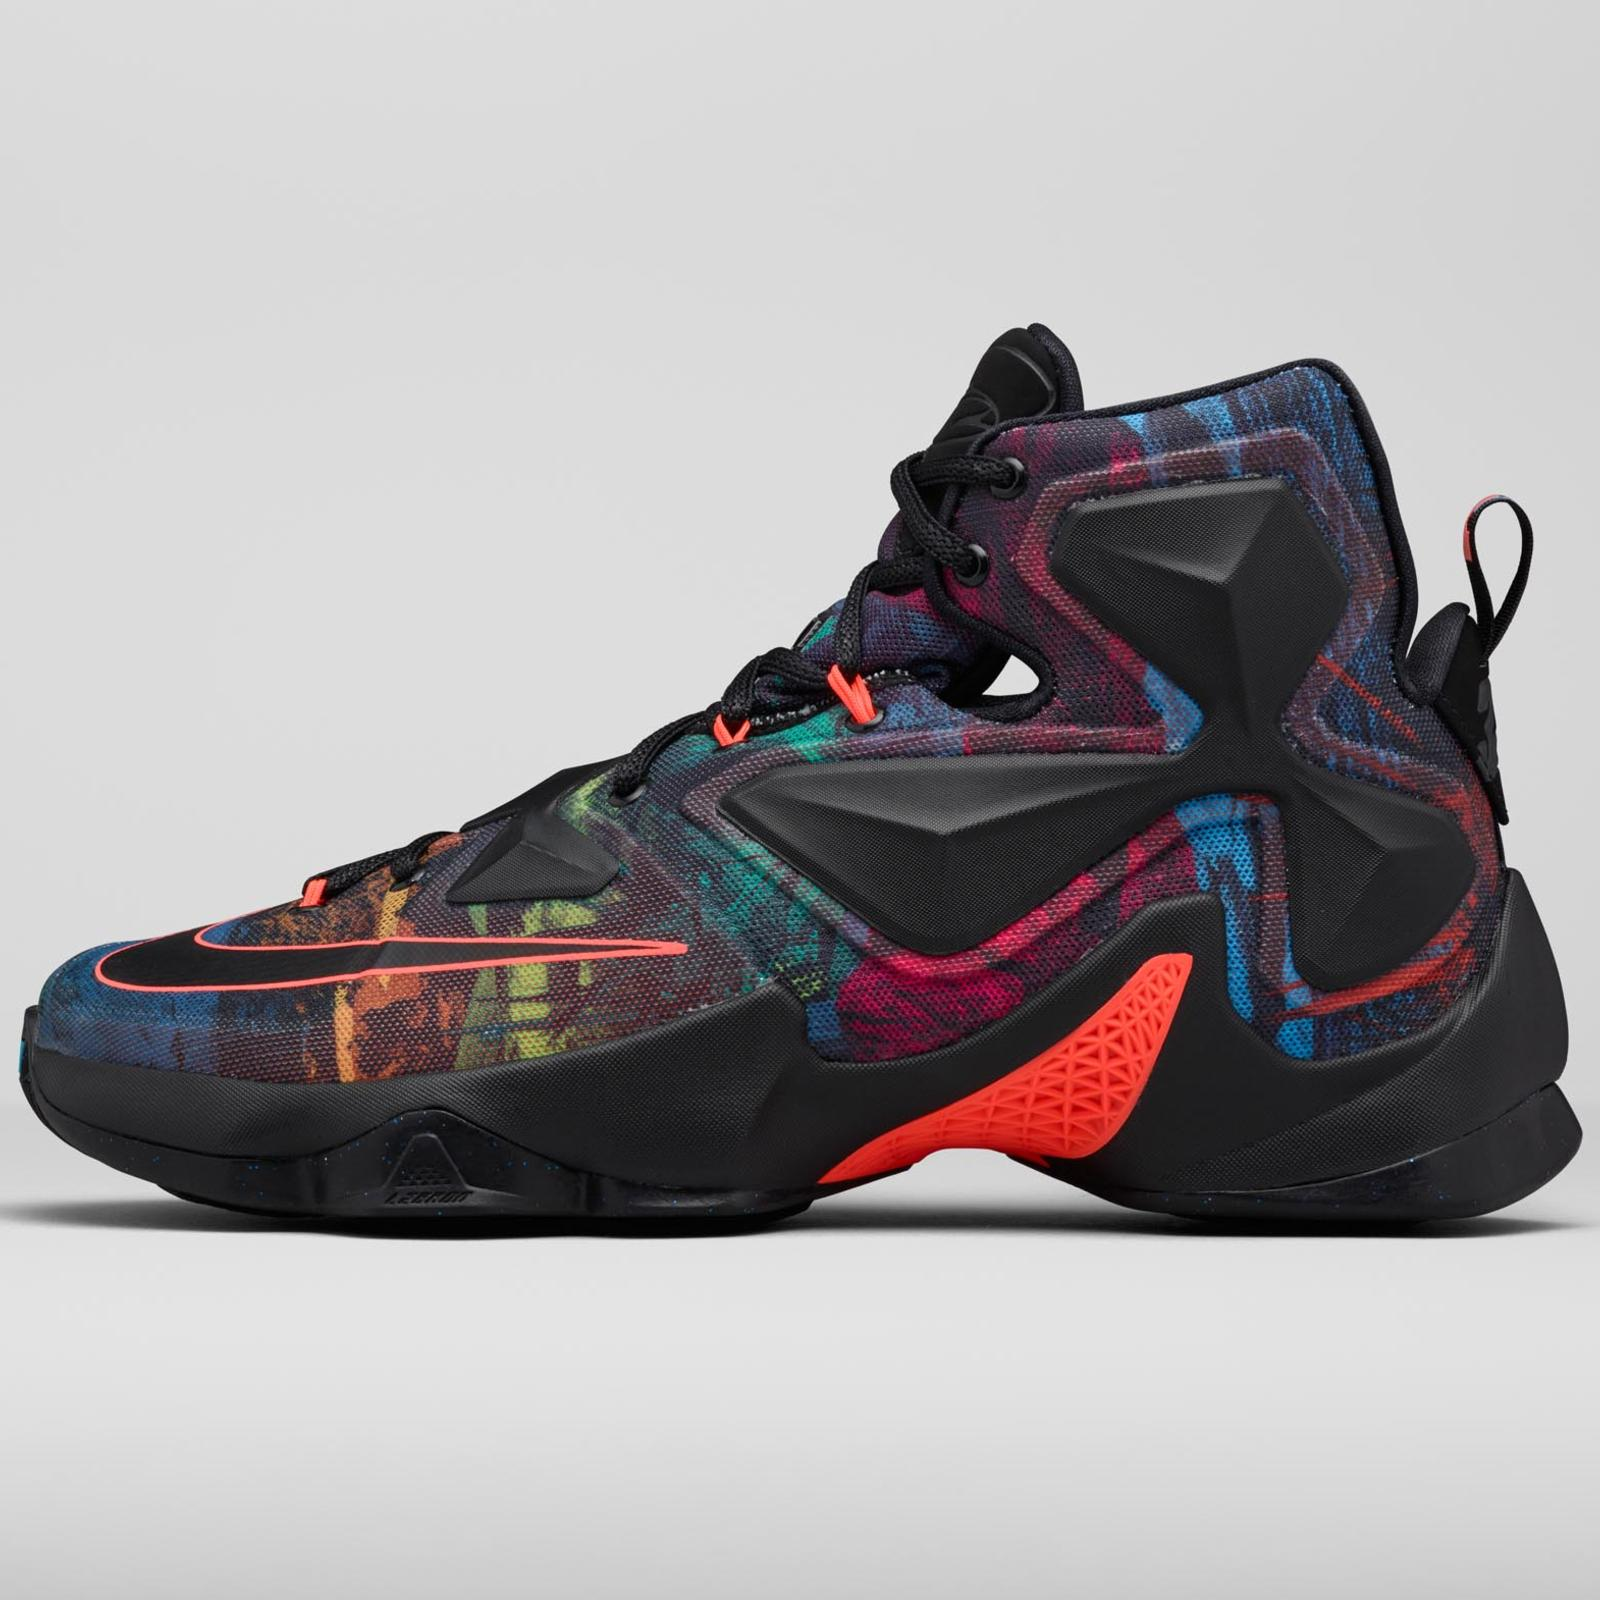 Lebron James Shoes What Kind Was He Wearing When Passing